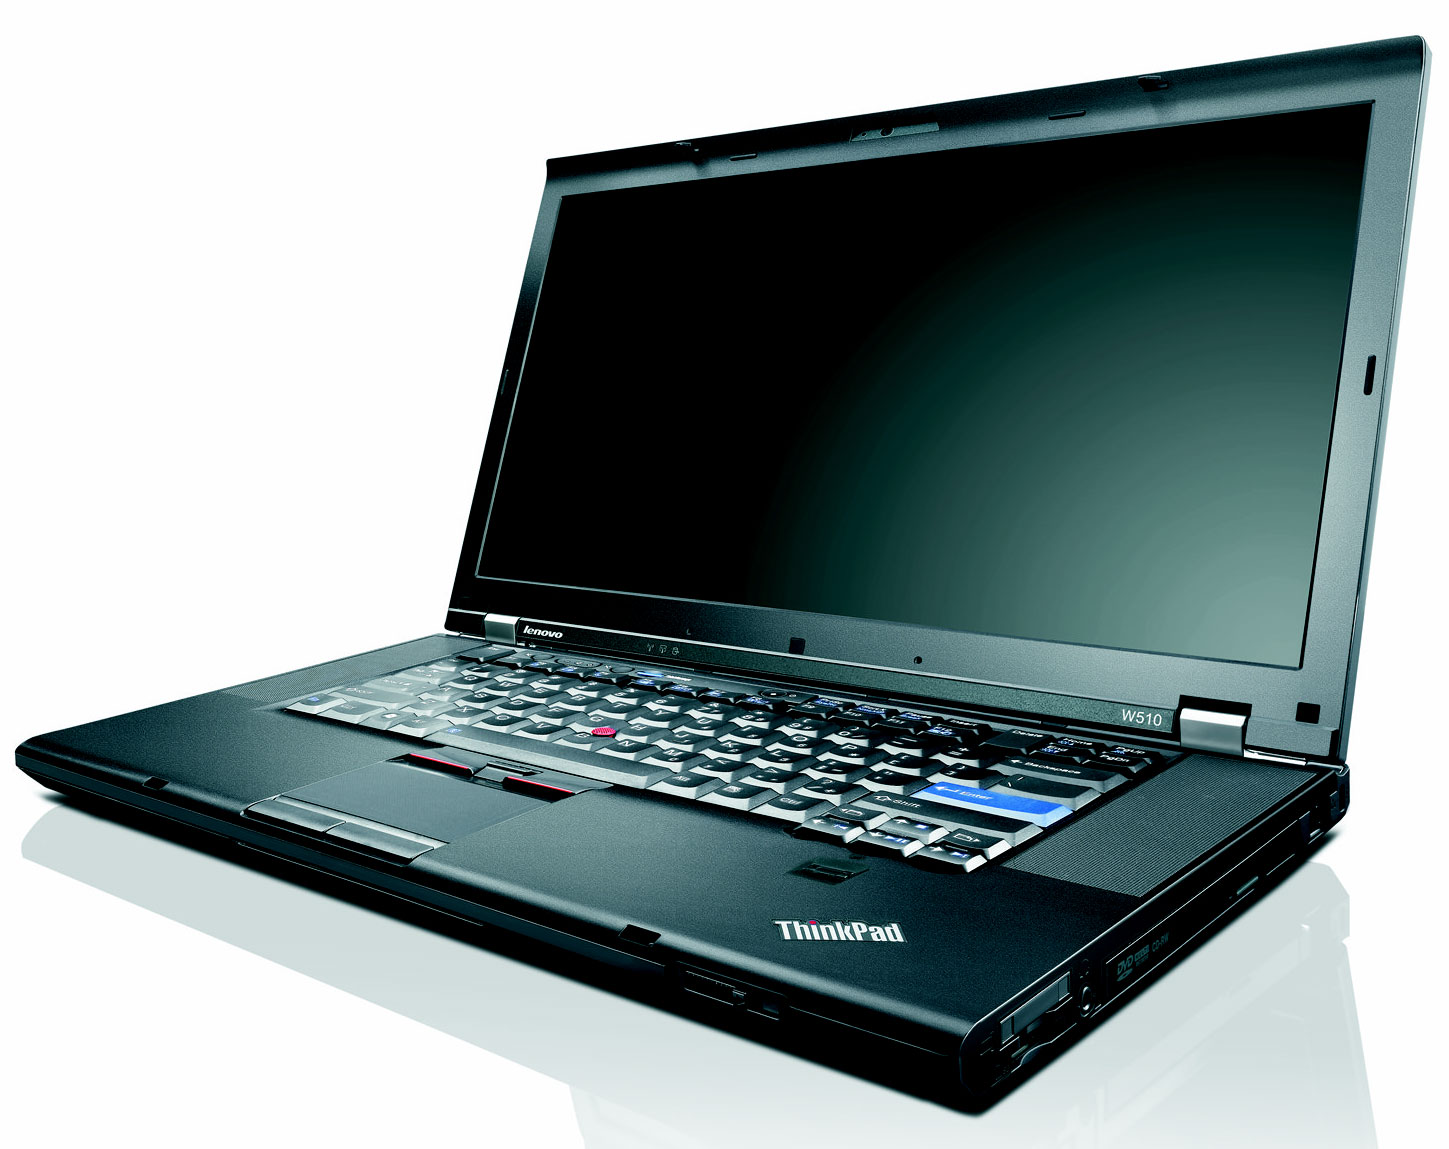 Lenovo ThinkPad W510 Overview